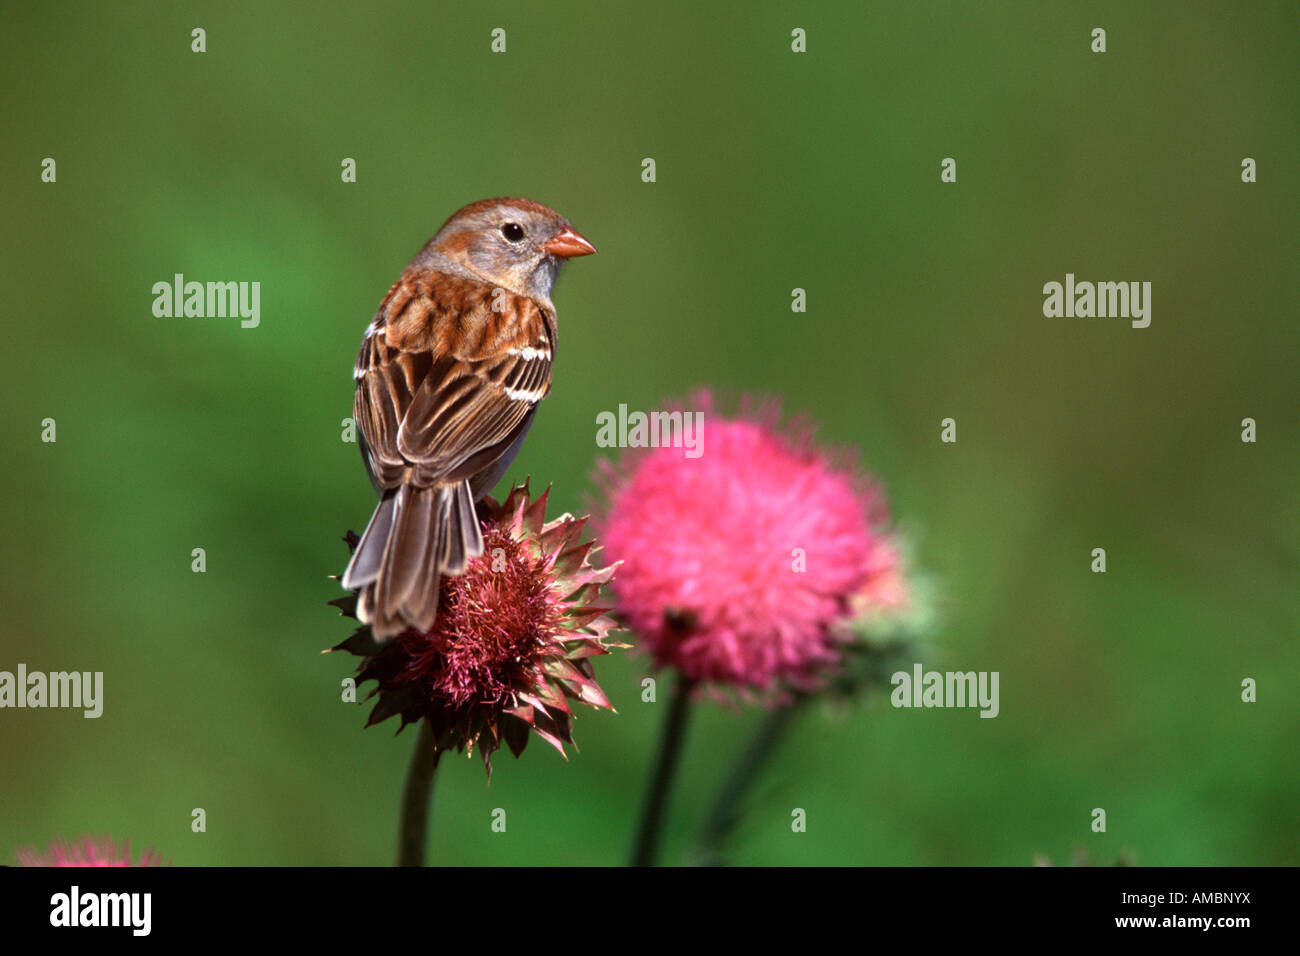 Field Sparrow on Thistle - Stock Image